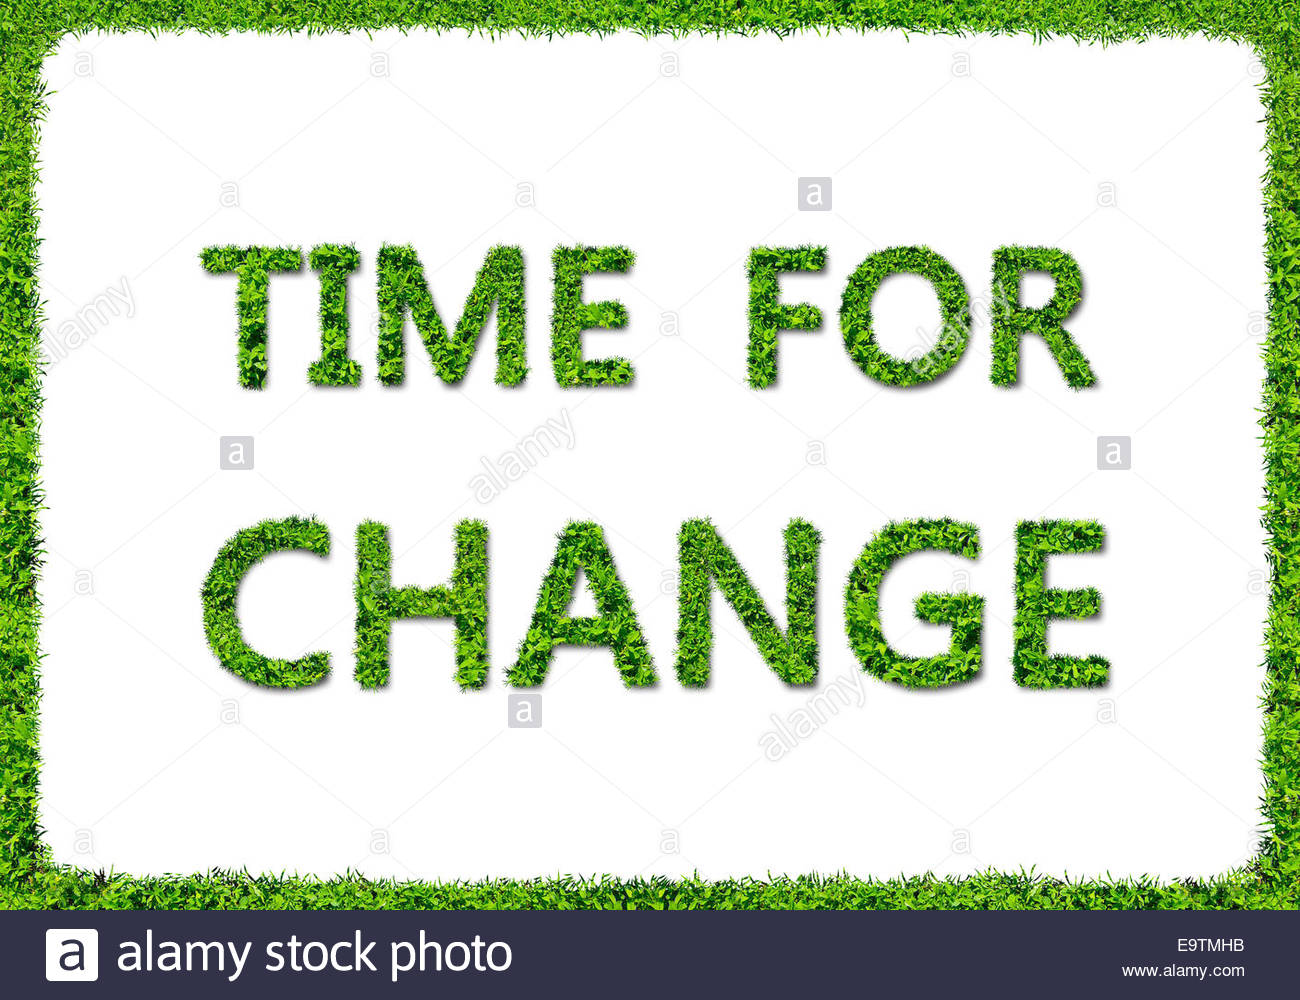 TIME FOR CHANGE - Grasgrün-Konzept Stockbild